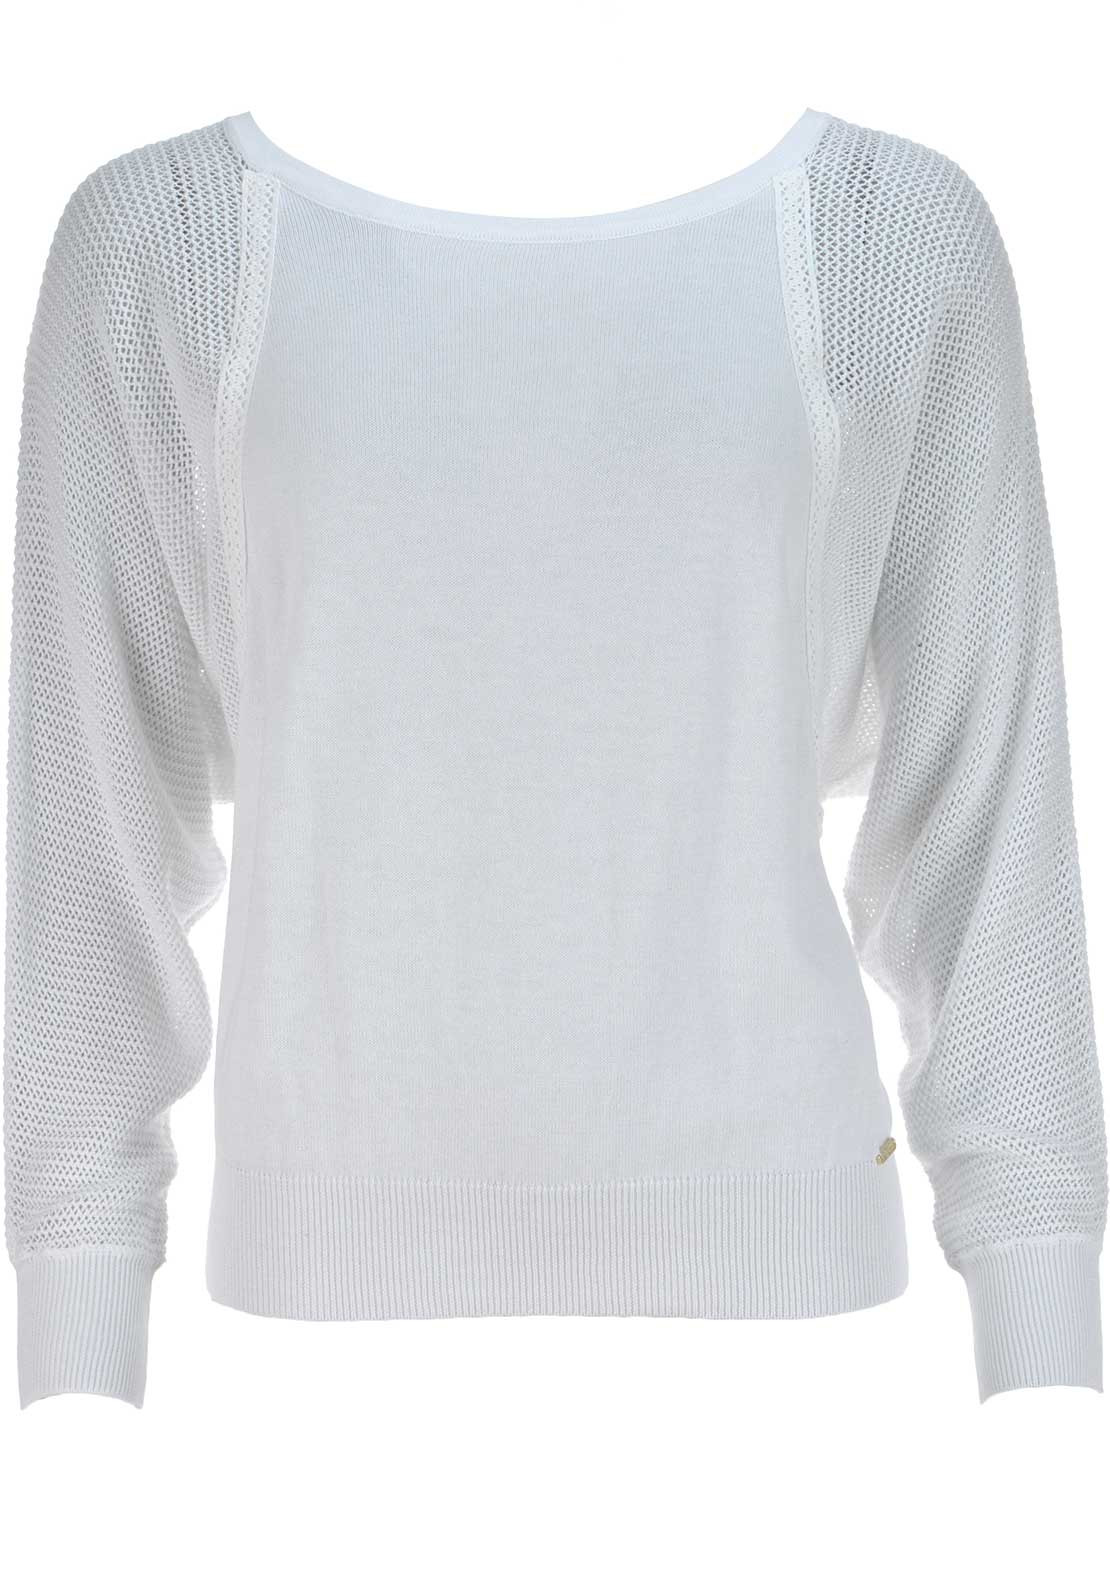 Guess Womens Textured Knitted Jumper, White